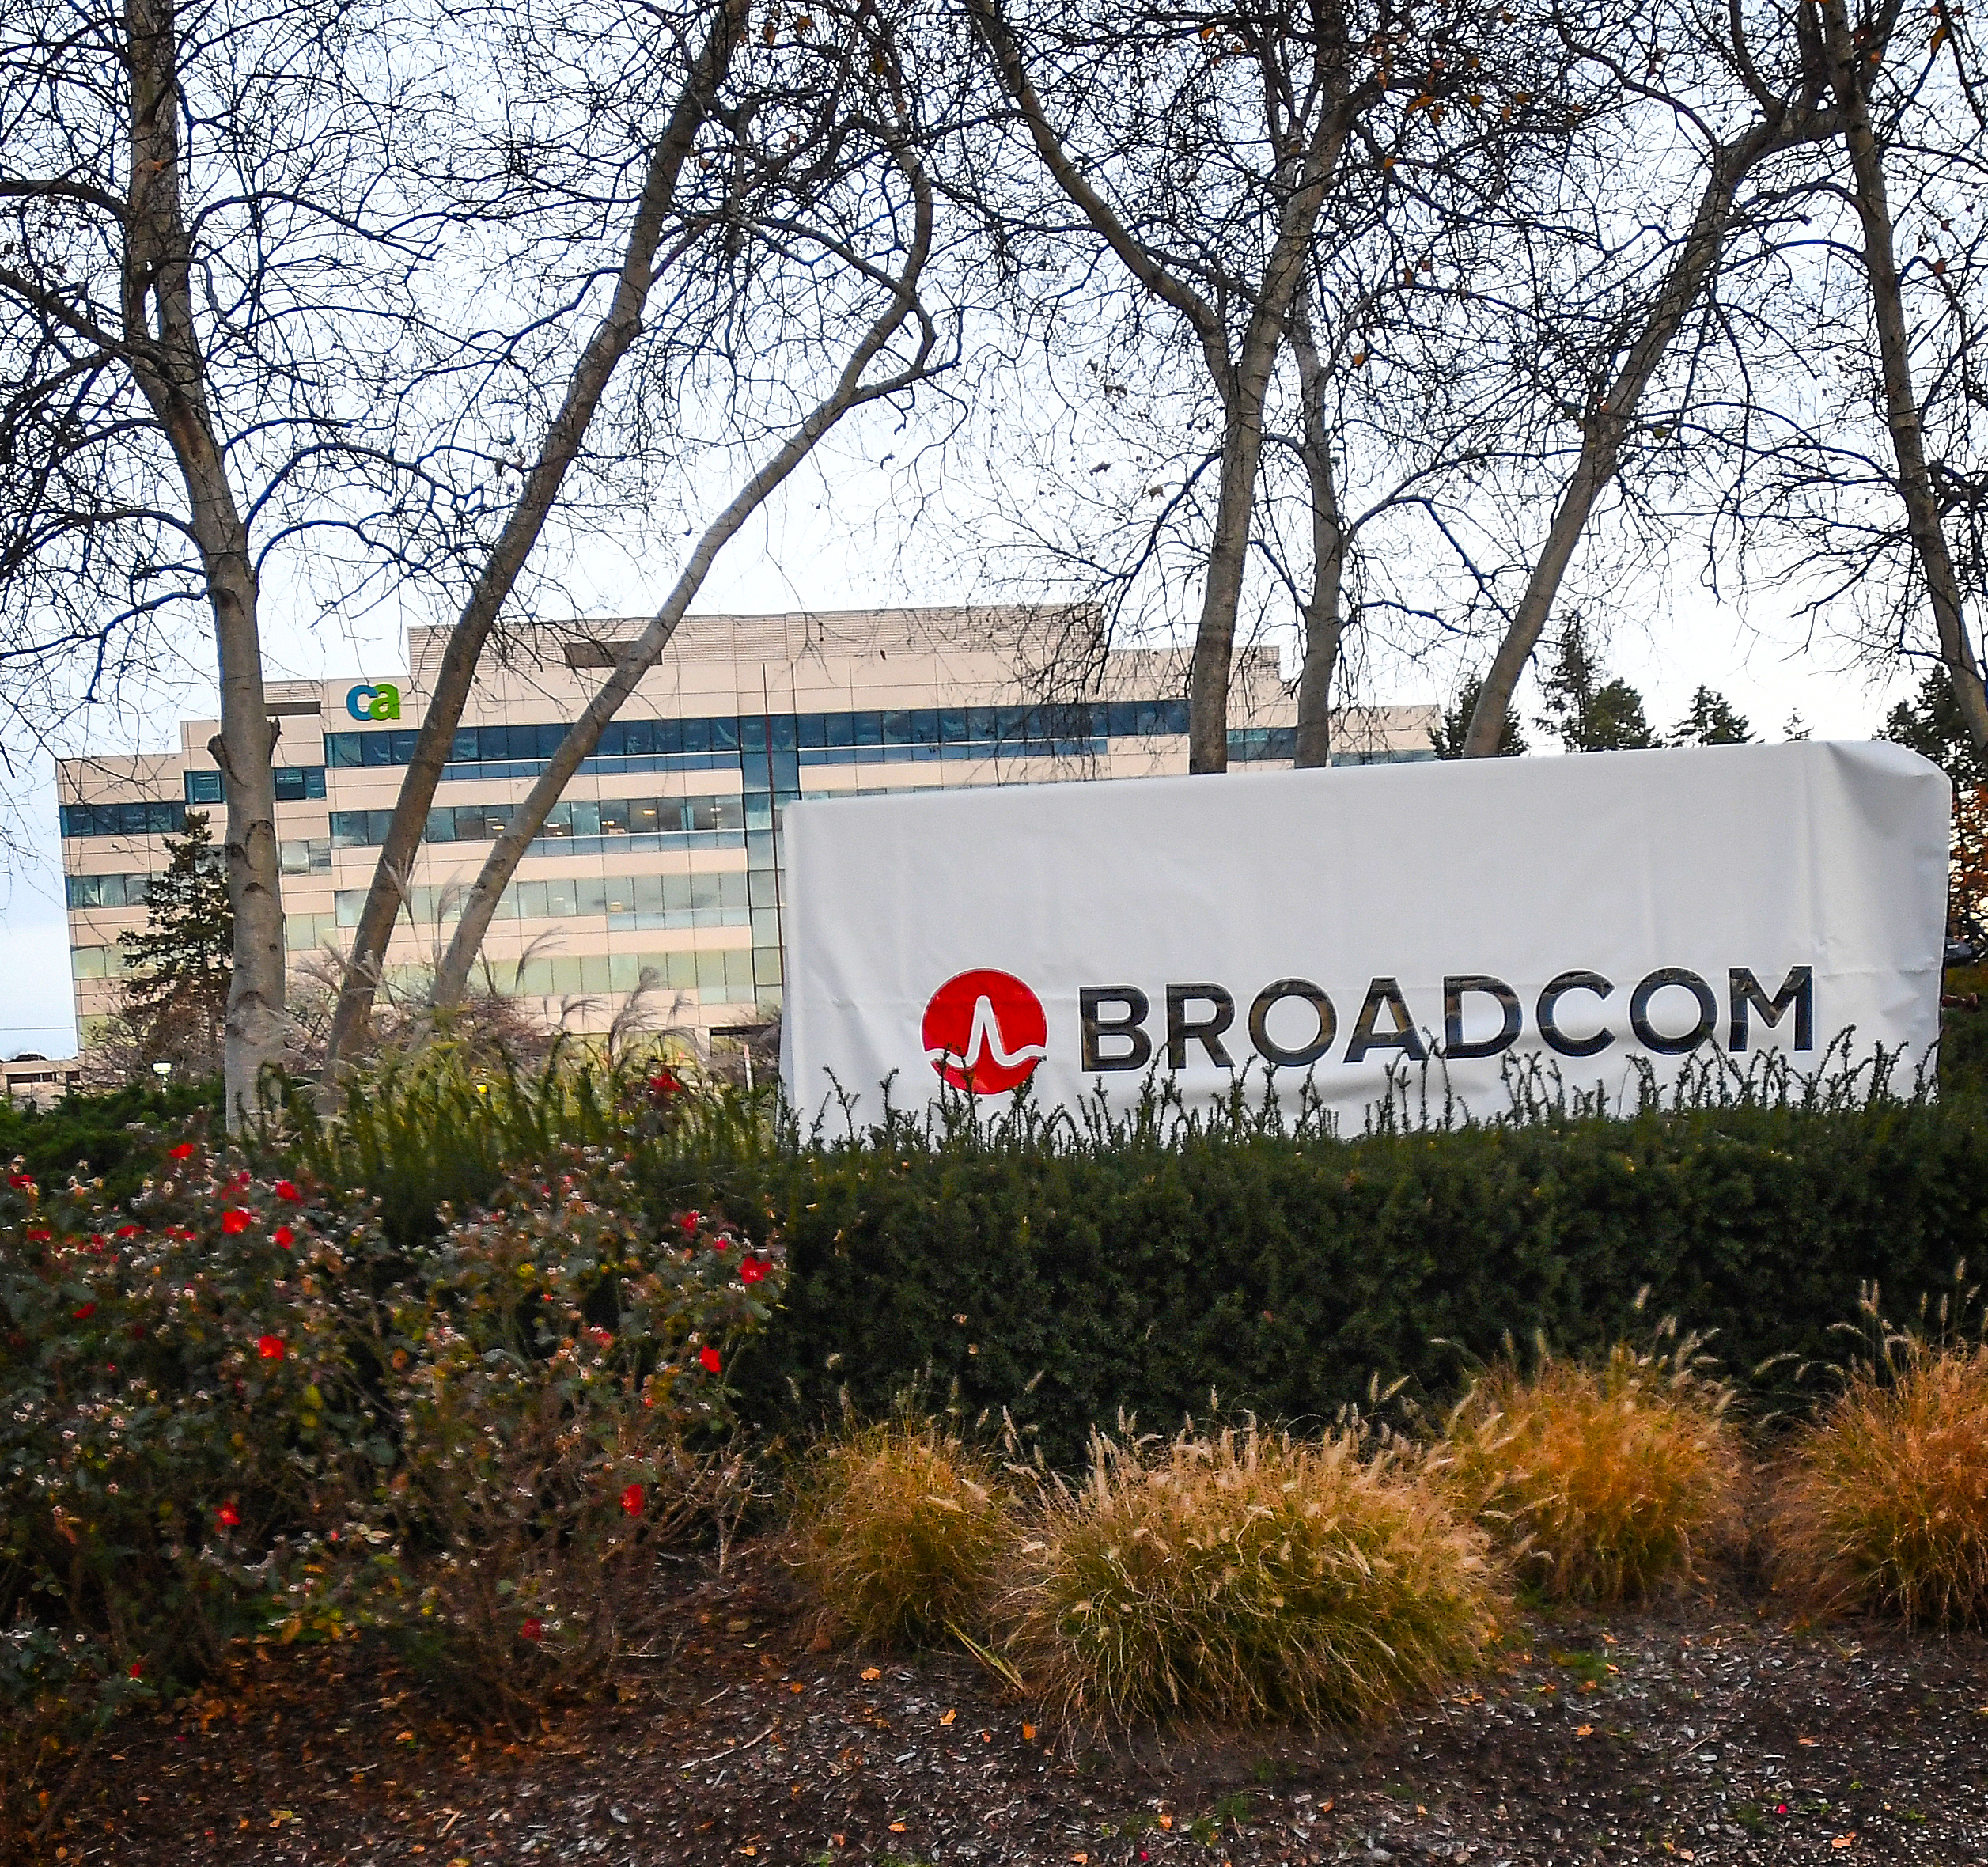 Broadcom signage outside former Computer Associates building